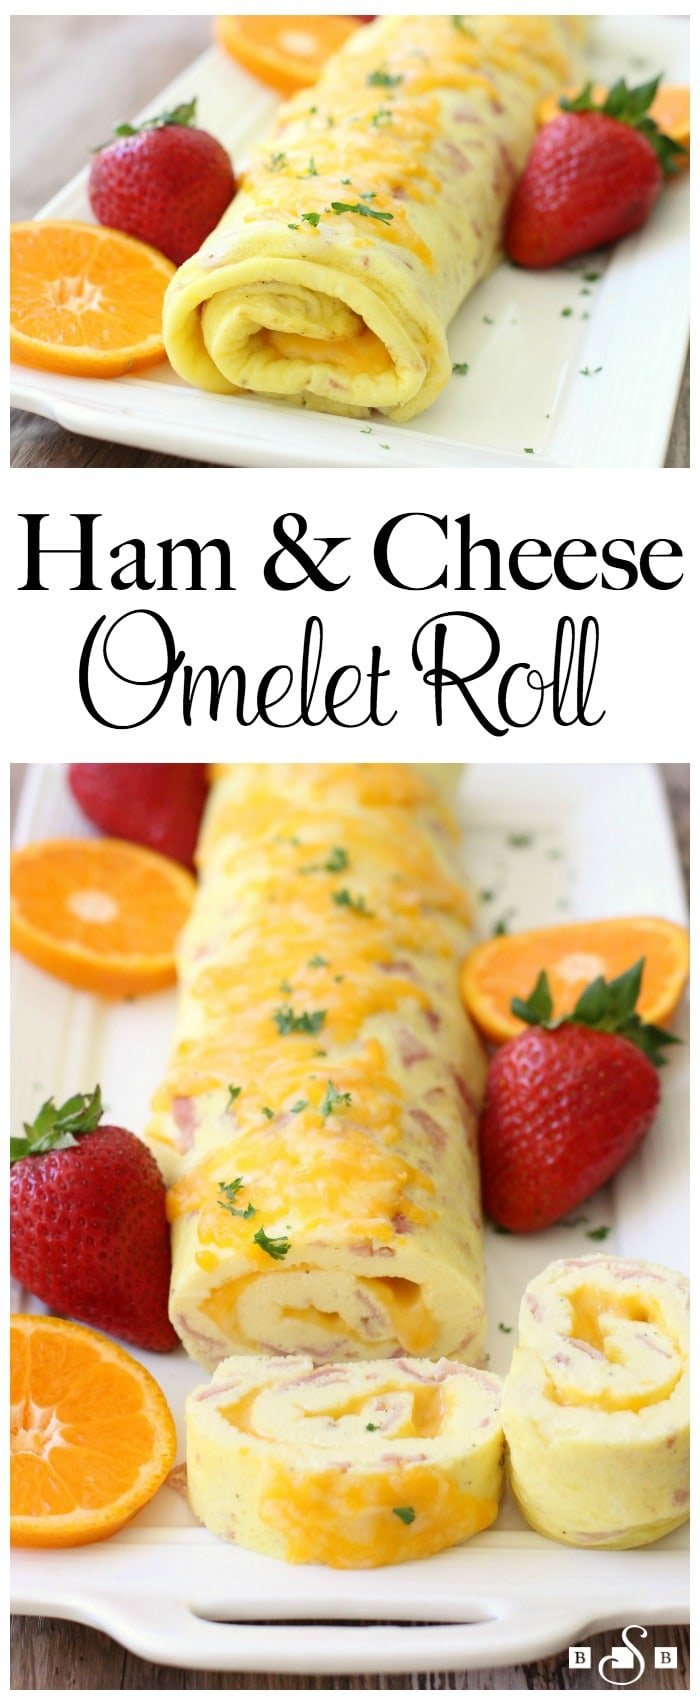 Ham & Cheese Omelet Roll...your new favorite breakfast! It takes the delicious egg, ham, and cheese flavor combination and gives it a lovely twist, while remaining simple to make.